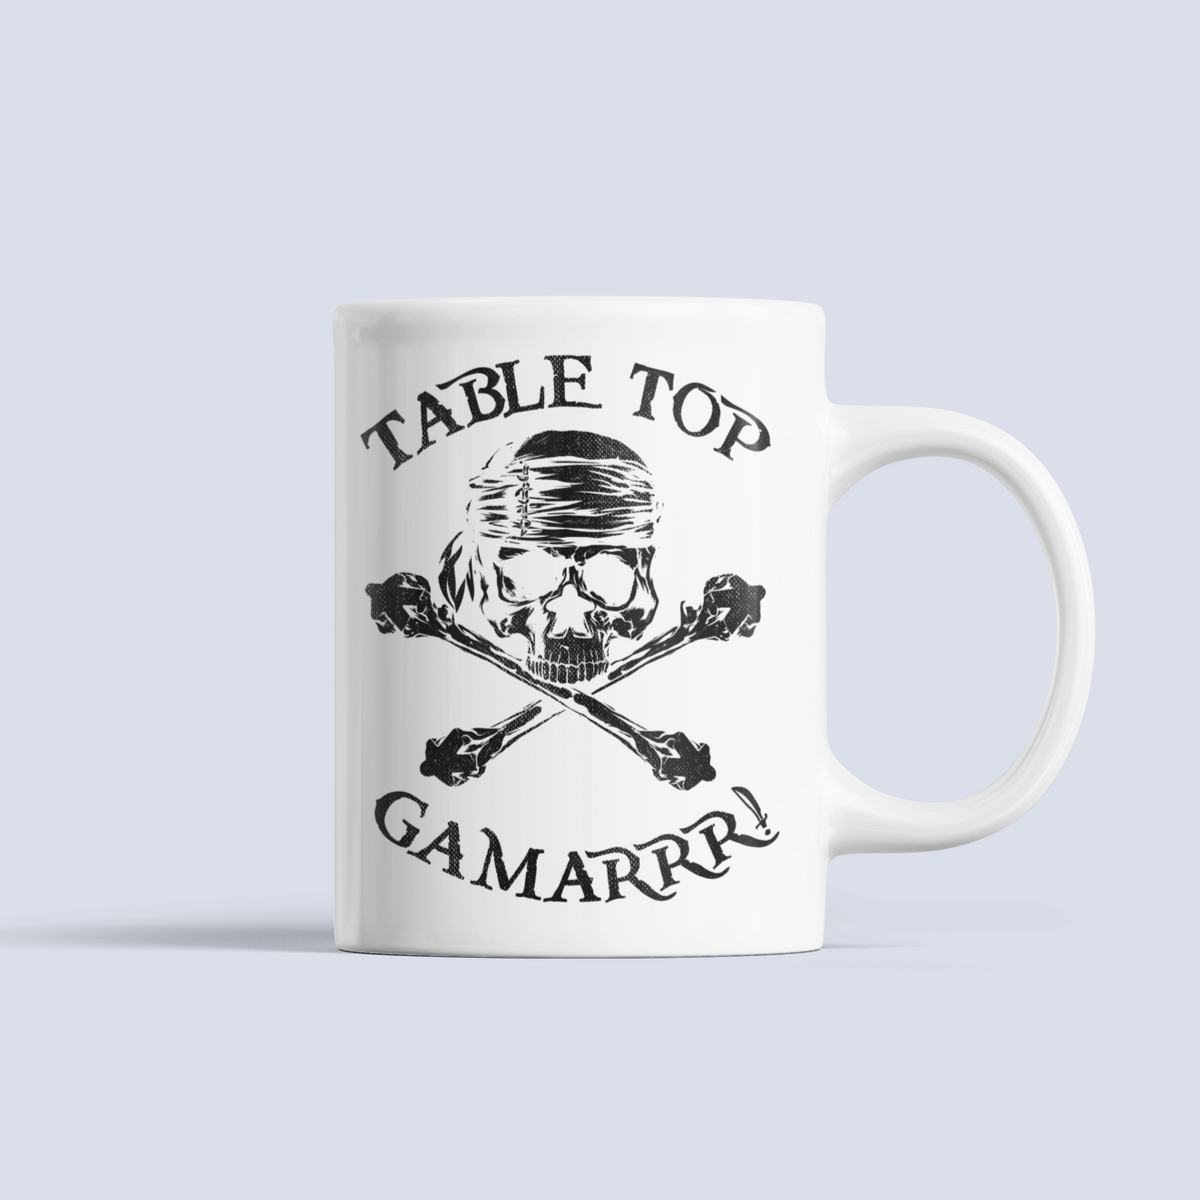 Meeple Crossbones Table Top Gamarrr Boardgame Ceramic 15oz Mug